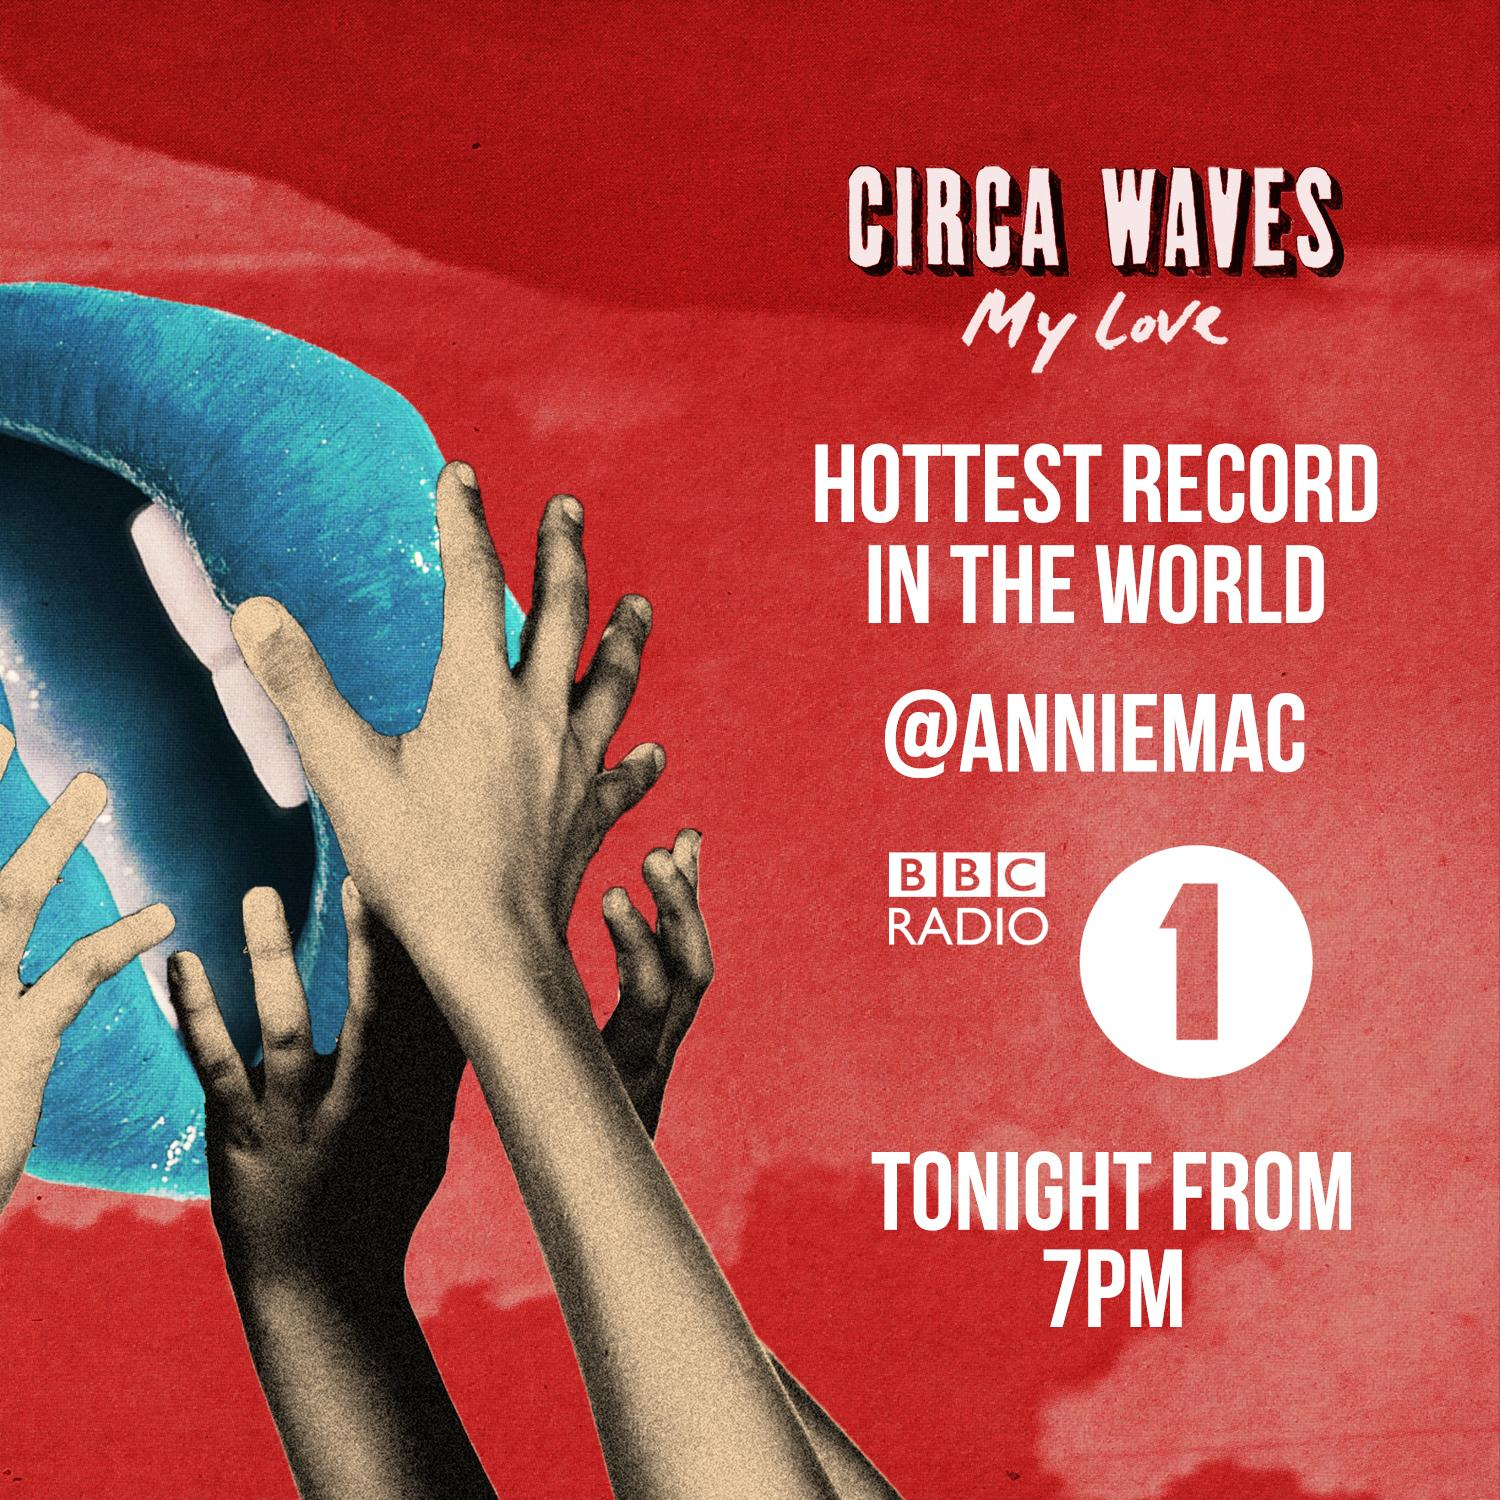 RT @CircaWaves: MY LOVE IS HOTTEST RECORD IN THE WORLD BABY! Turn on @BBCR1 from 7pm to hear me chatting rubbish to @AnnieMac :) http://t.c…